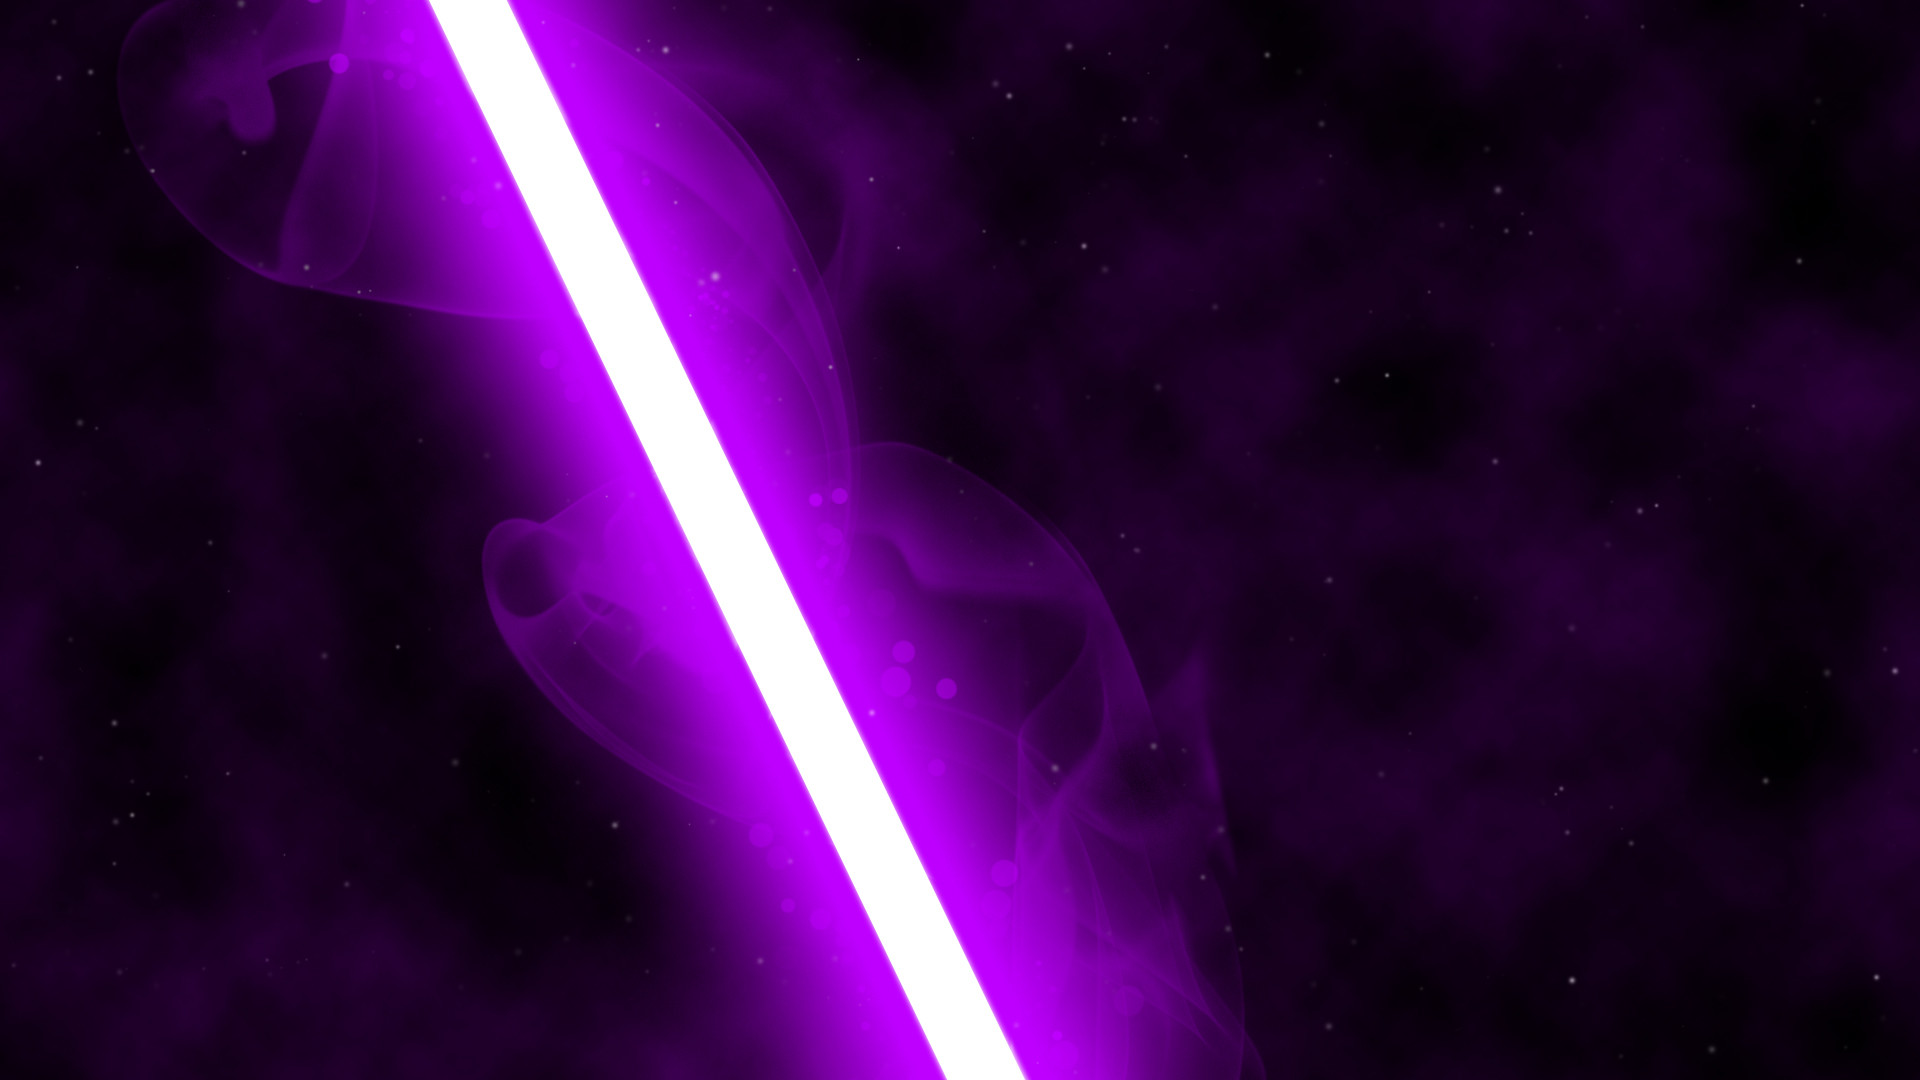 1920x1080 ... purple lightsaber wallpaper wallpapersafari; lightsaber hd ...